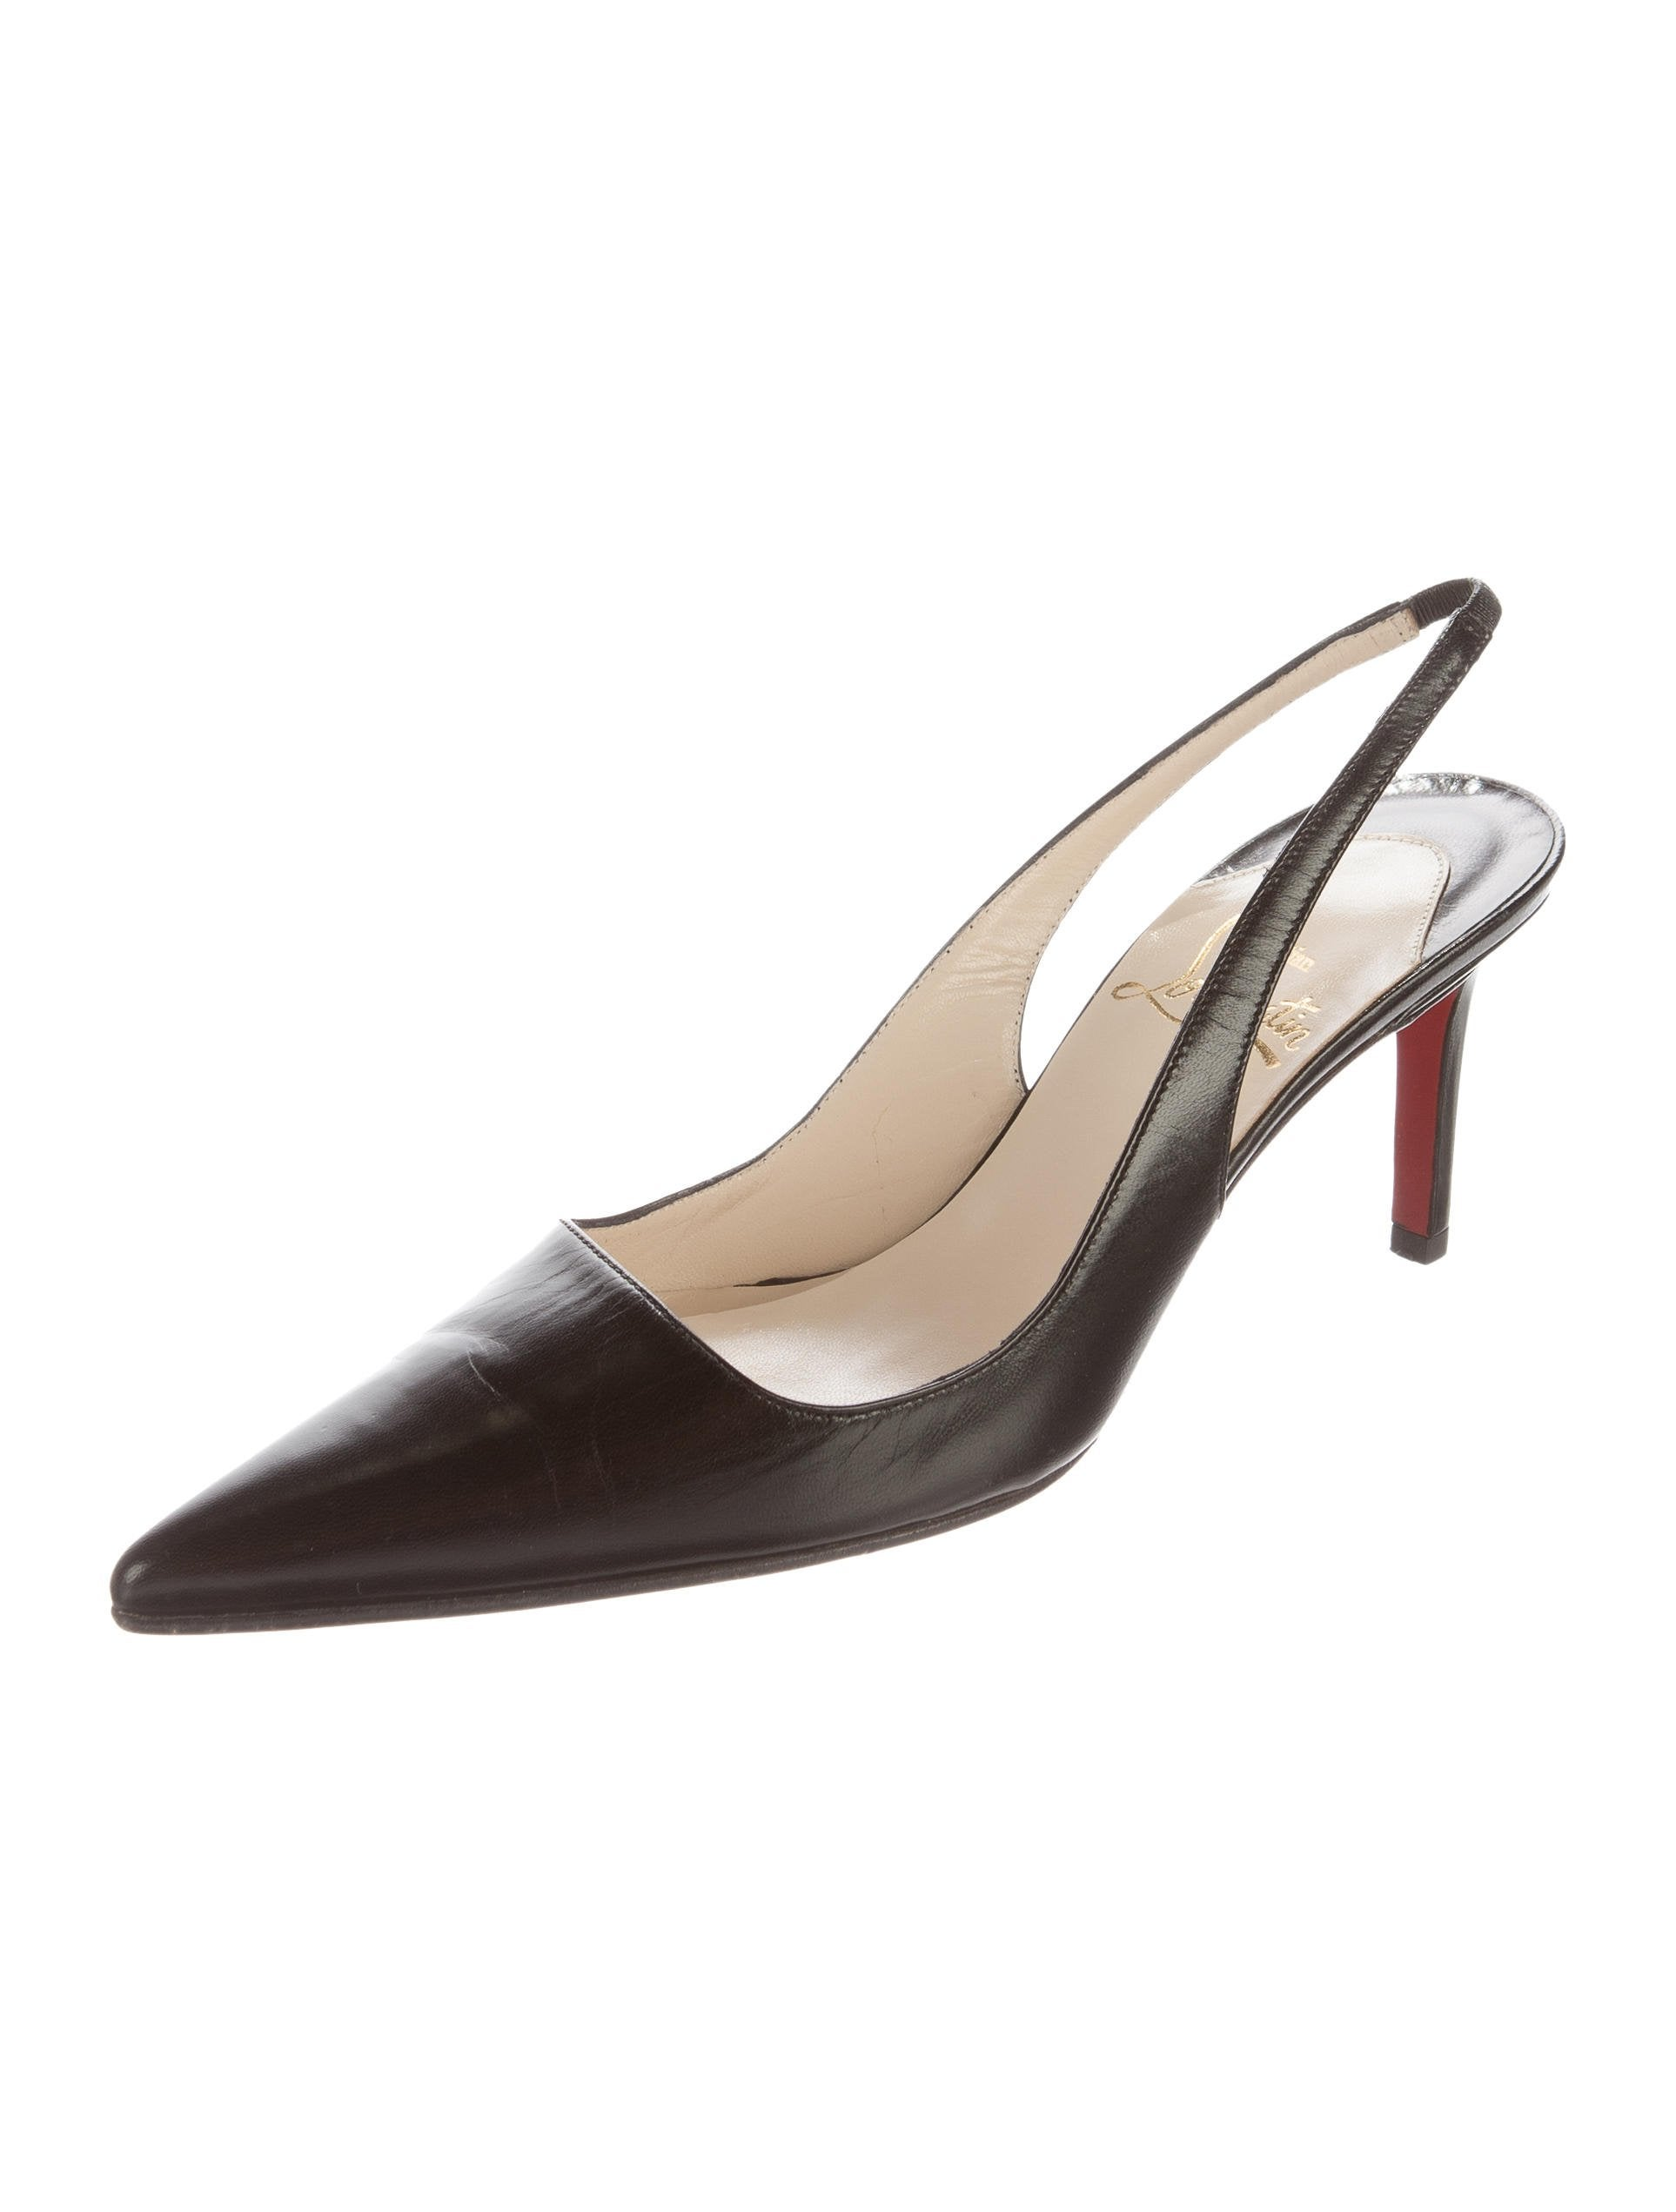 Christian Louboutin Leather Slingback Pumps - Shoes - CHT68428 | The RealReal